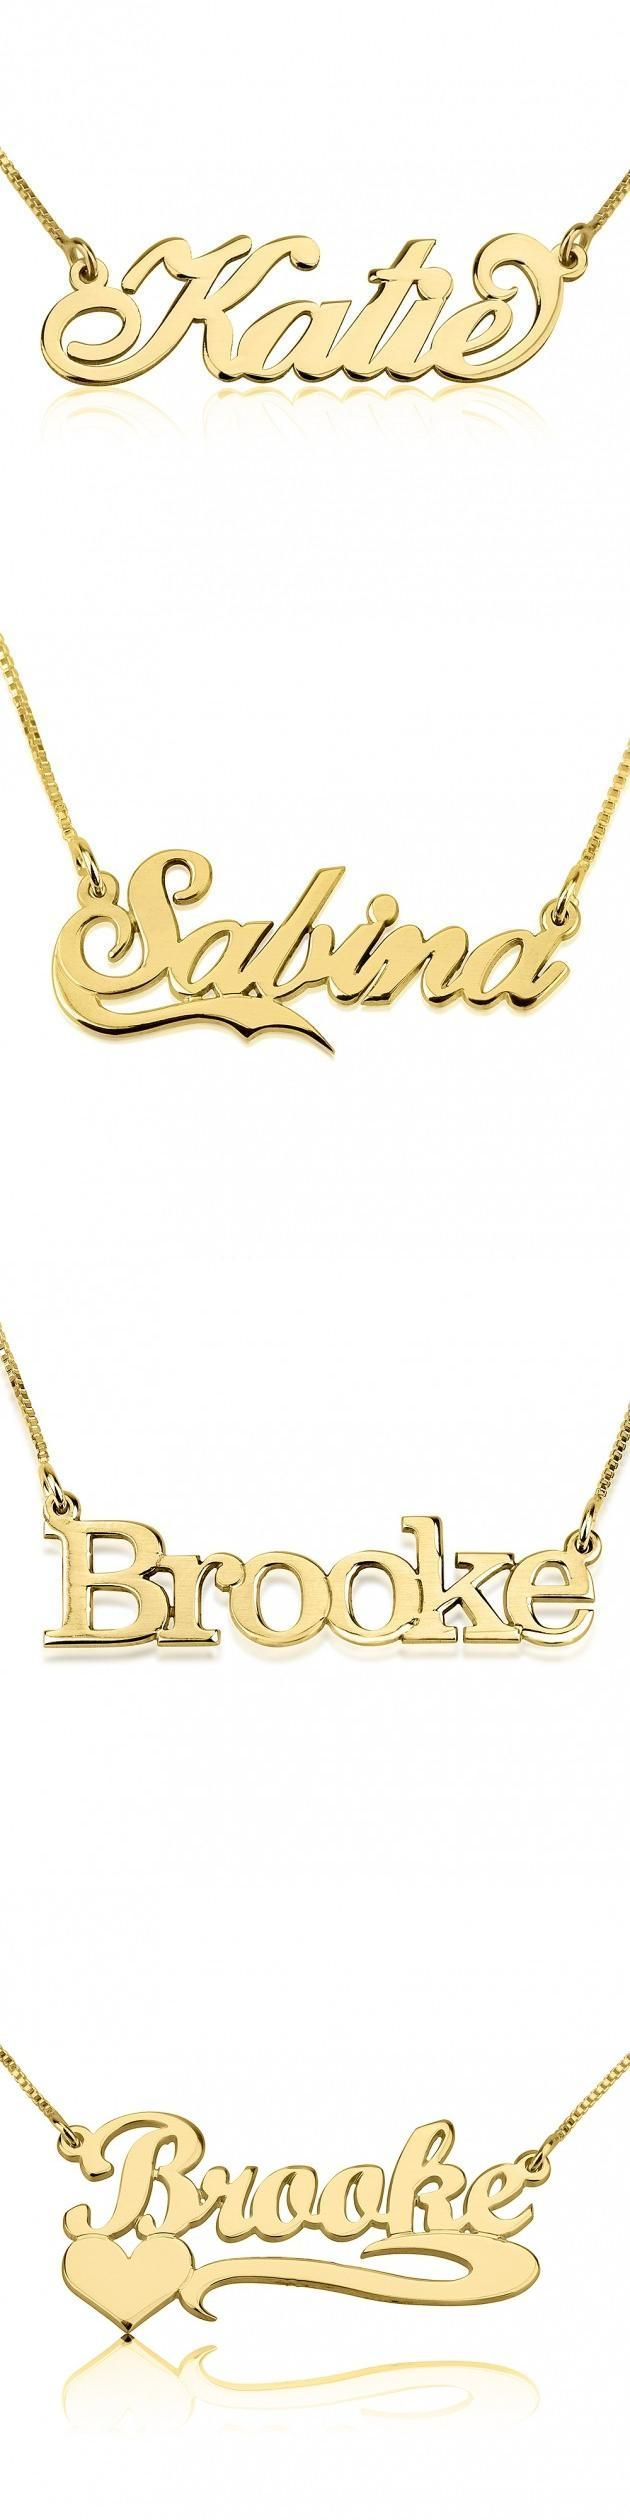 Mens Chain With Girlfriends Name